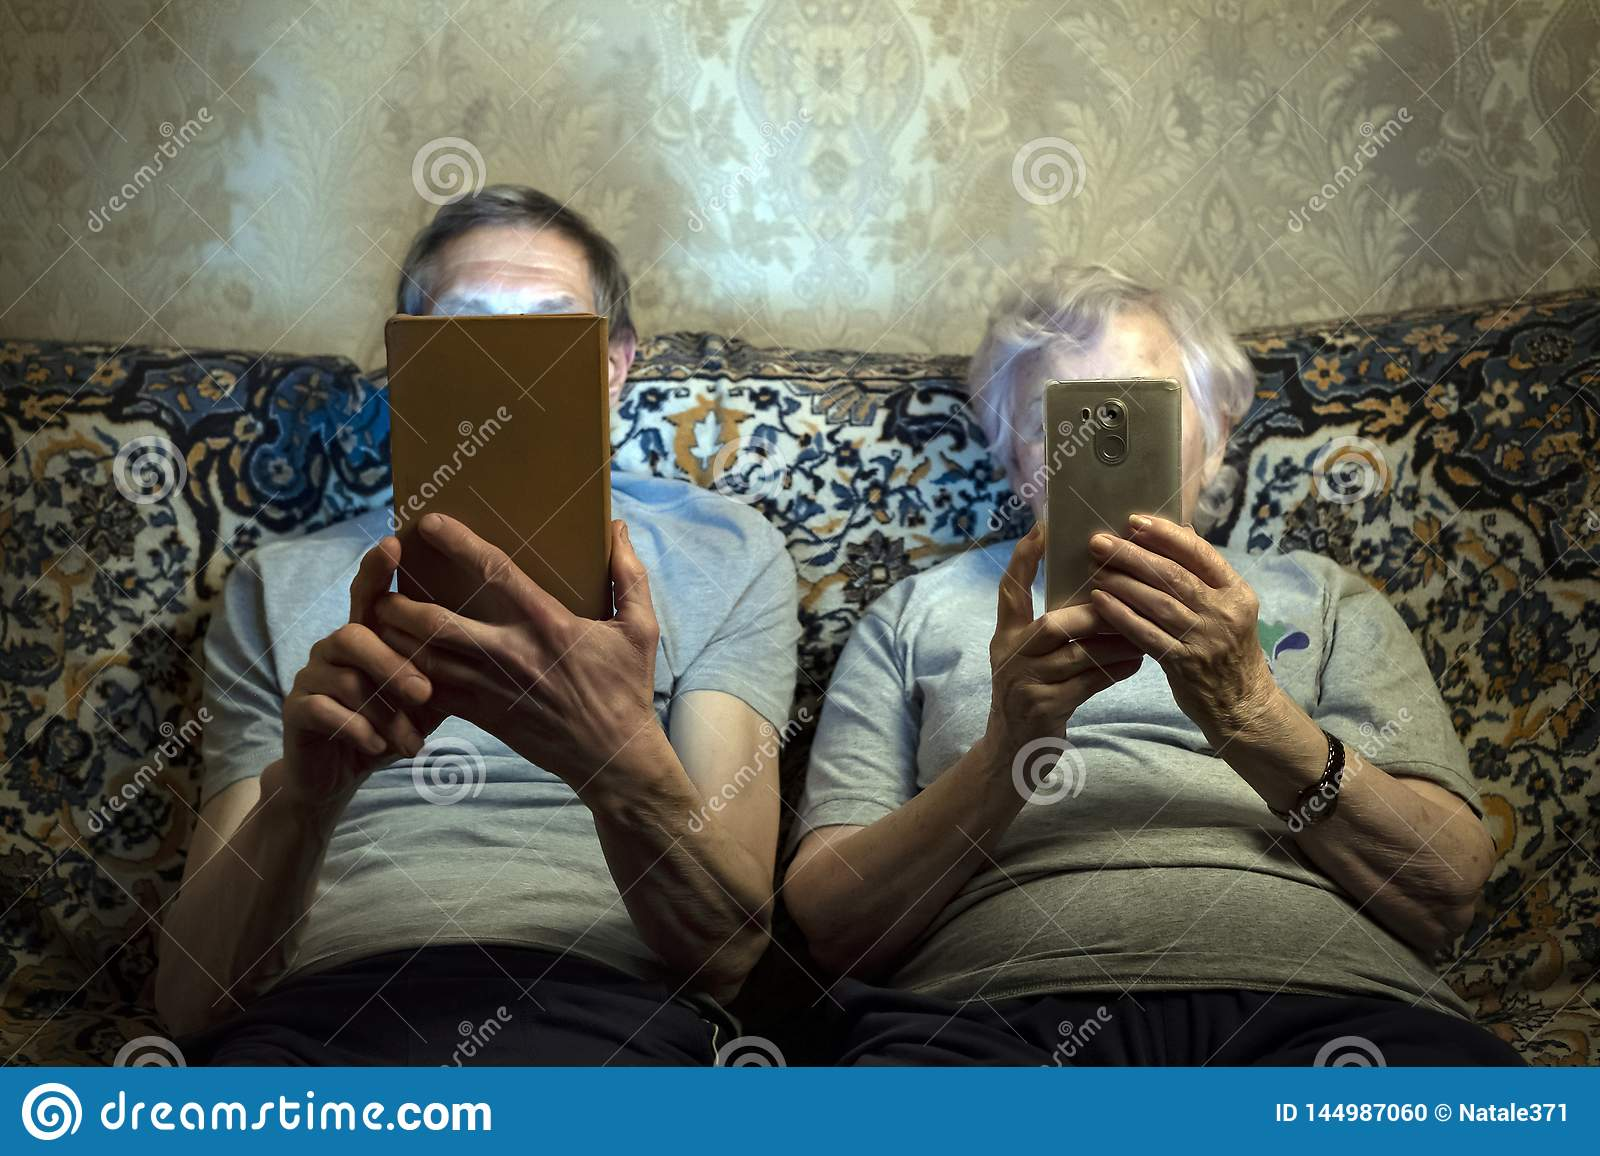 An elderly couple sit on the couch with gadgets, look at them close their faces.